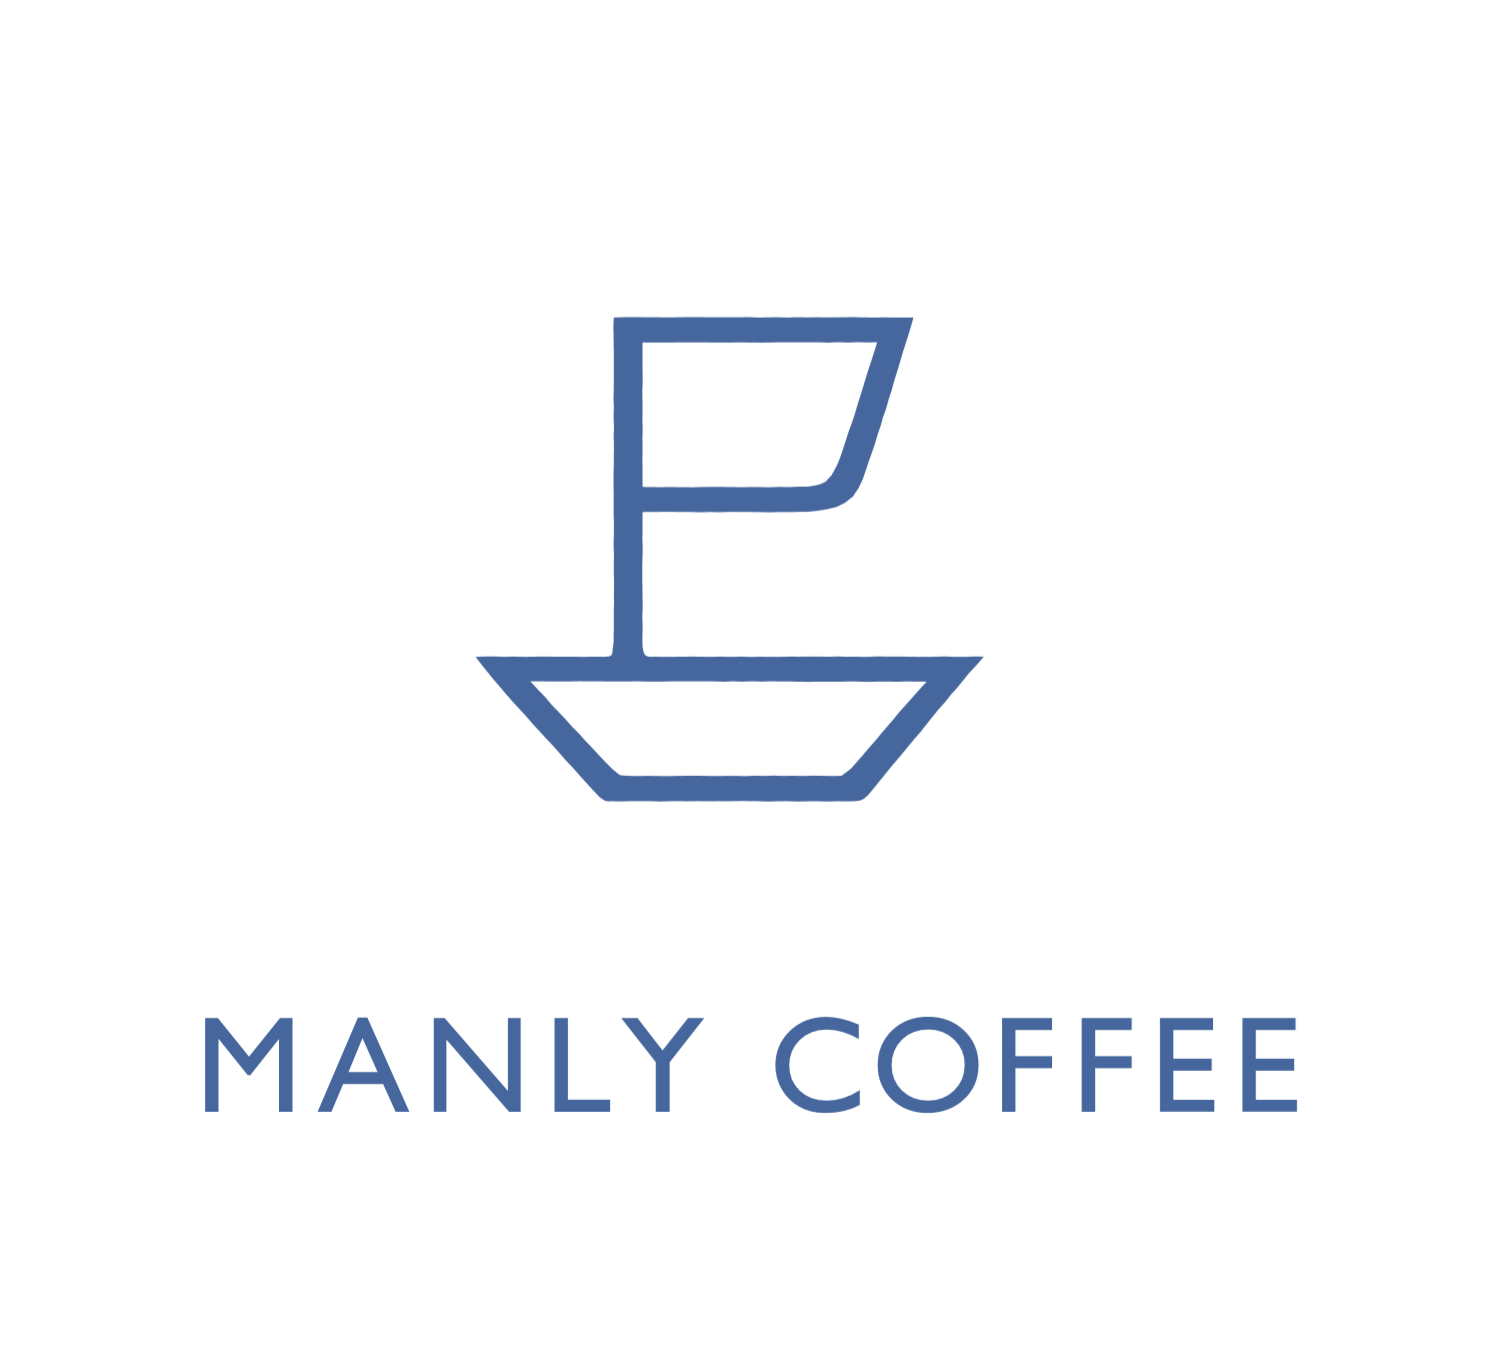 ManlyCoffee